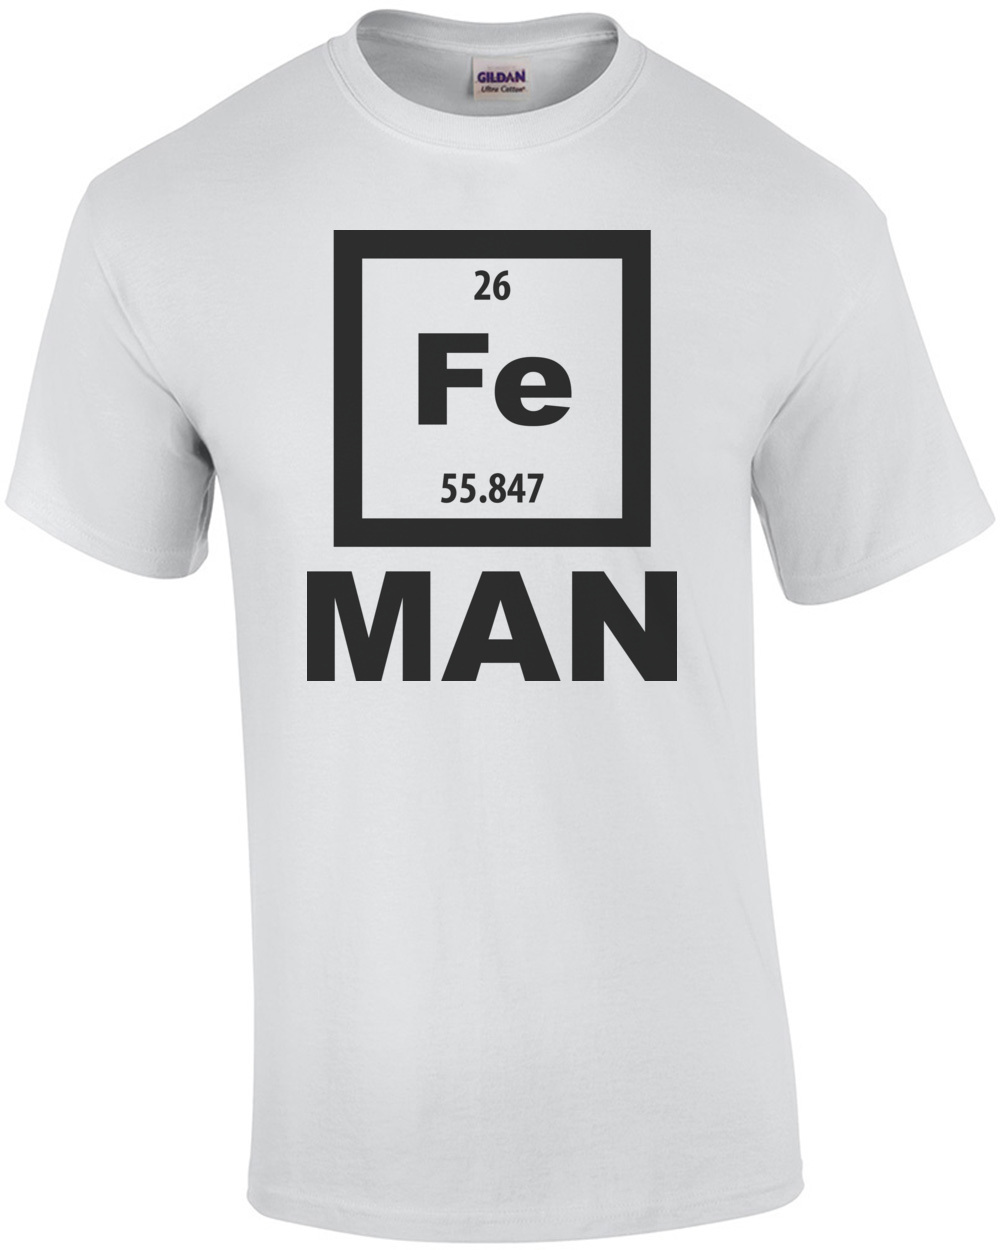 Fe Man Iron Man Element Periodic Table T Shirt